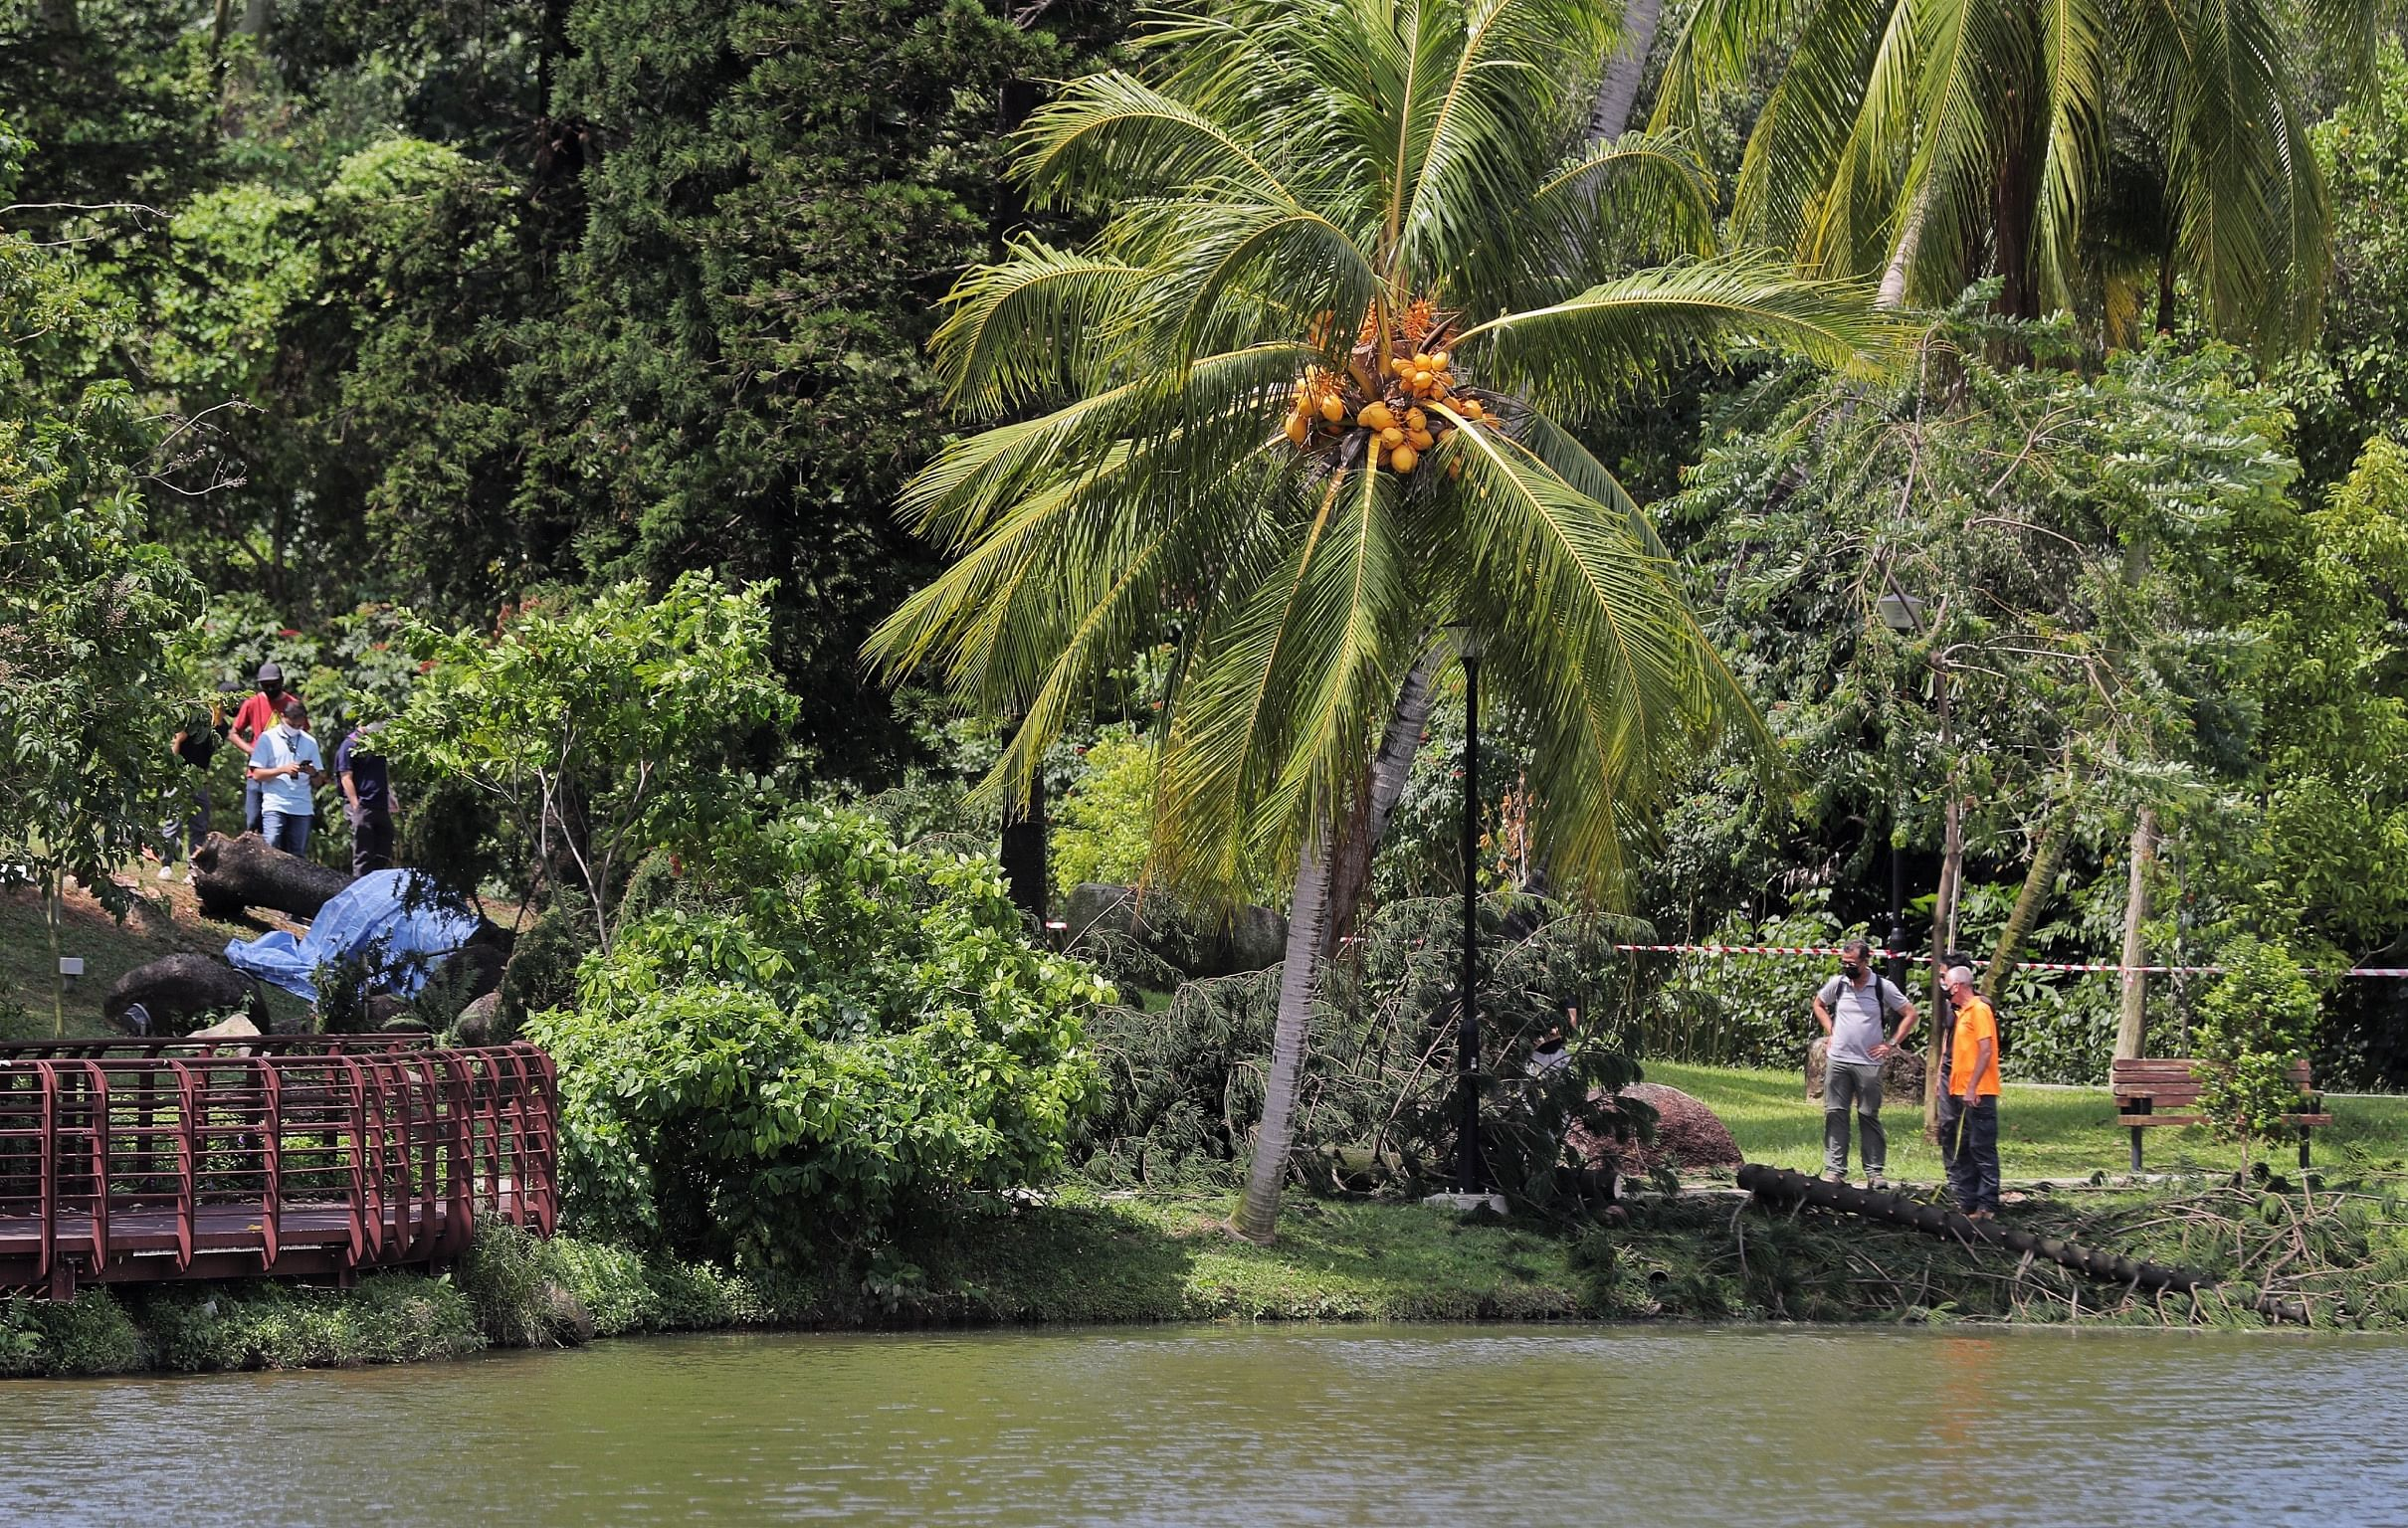 Singapore woman killed by falling tree in Marsiling Park was wearing noise-cancelling earbuds